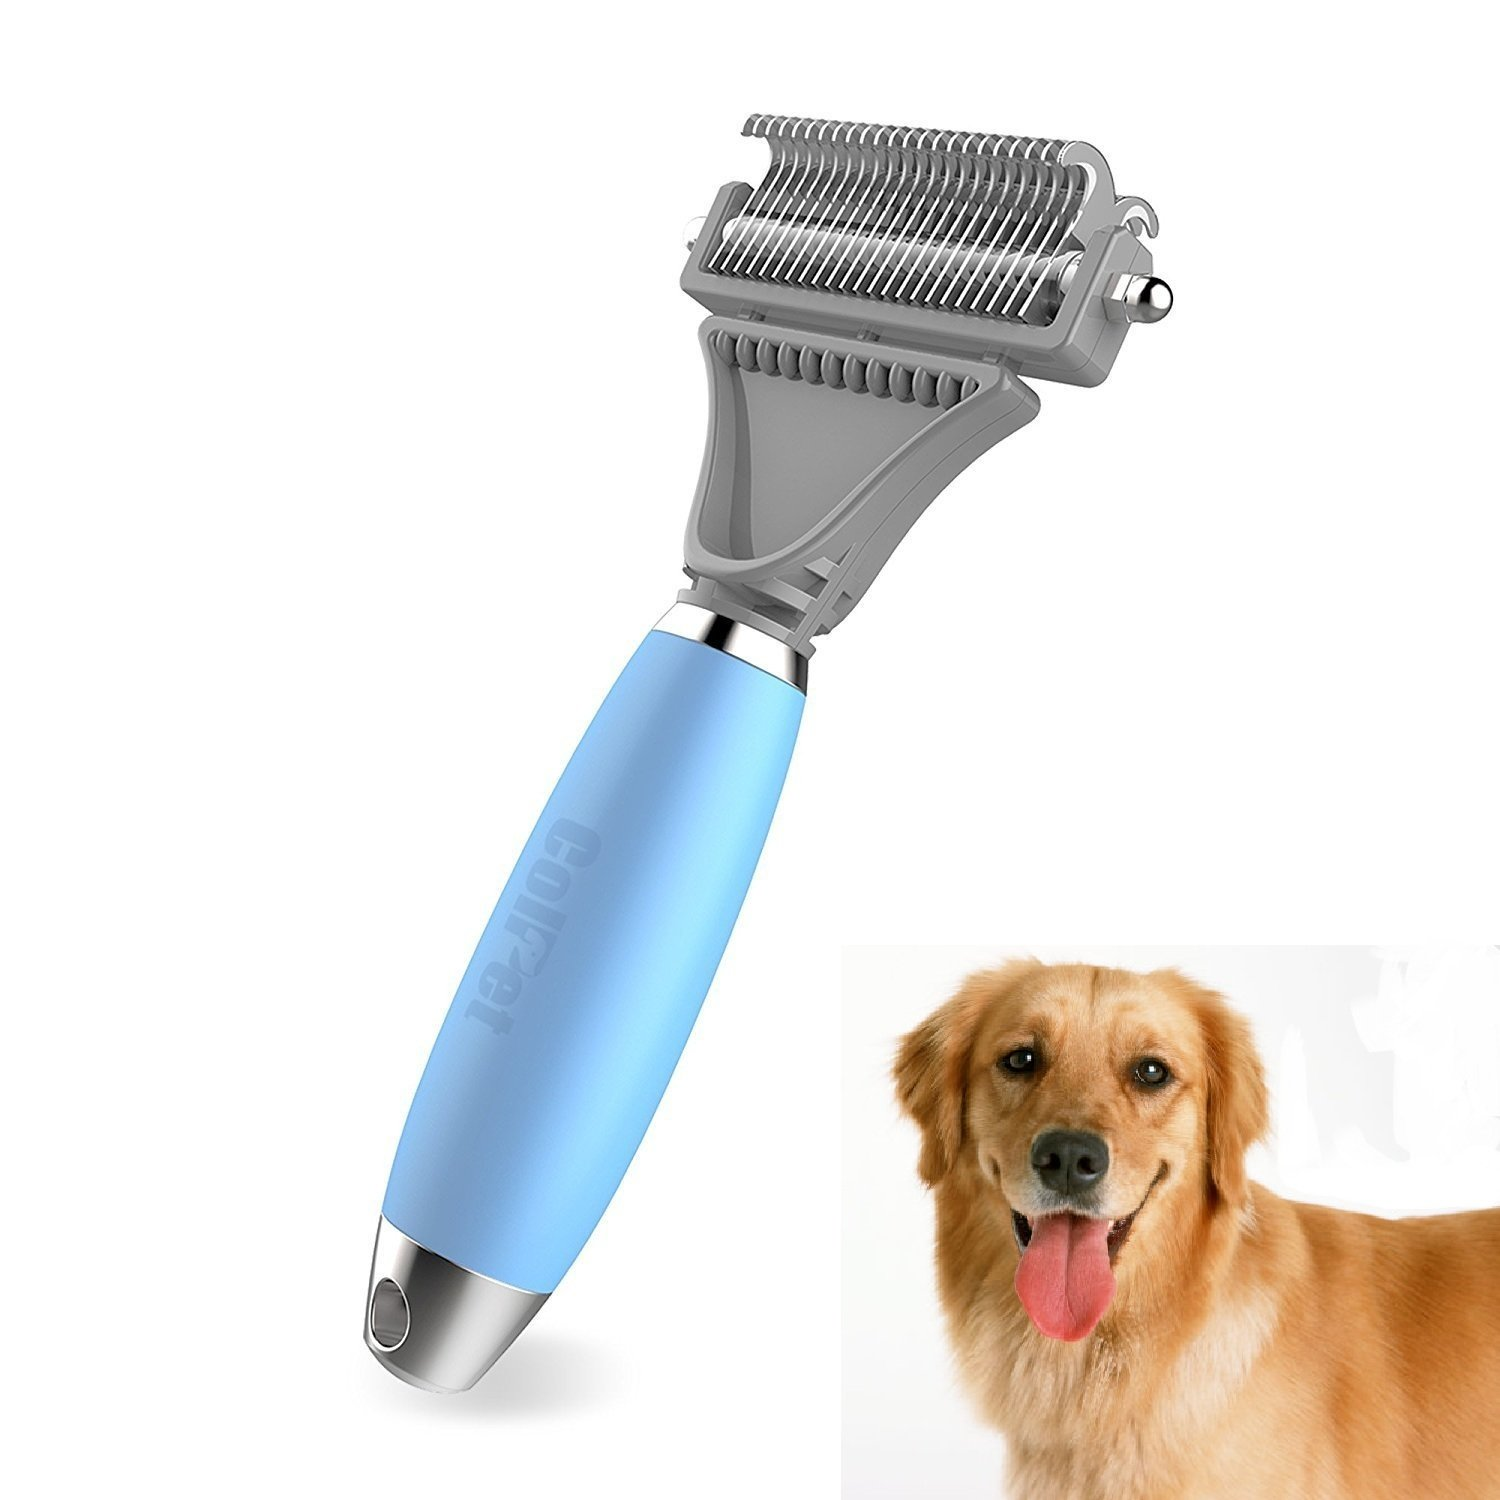 ColPet Dematting Comb Grooming Rake Dual Sided Adjustable Silicon Handle Matted Tangles for Cat Dogs